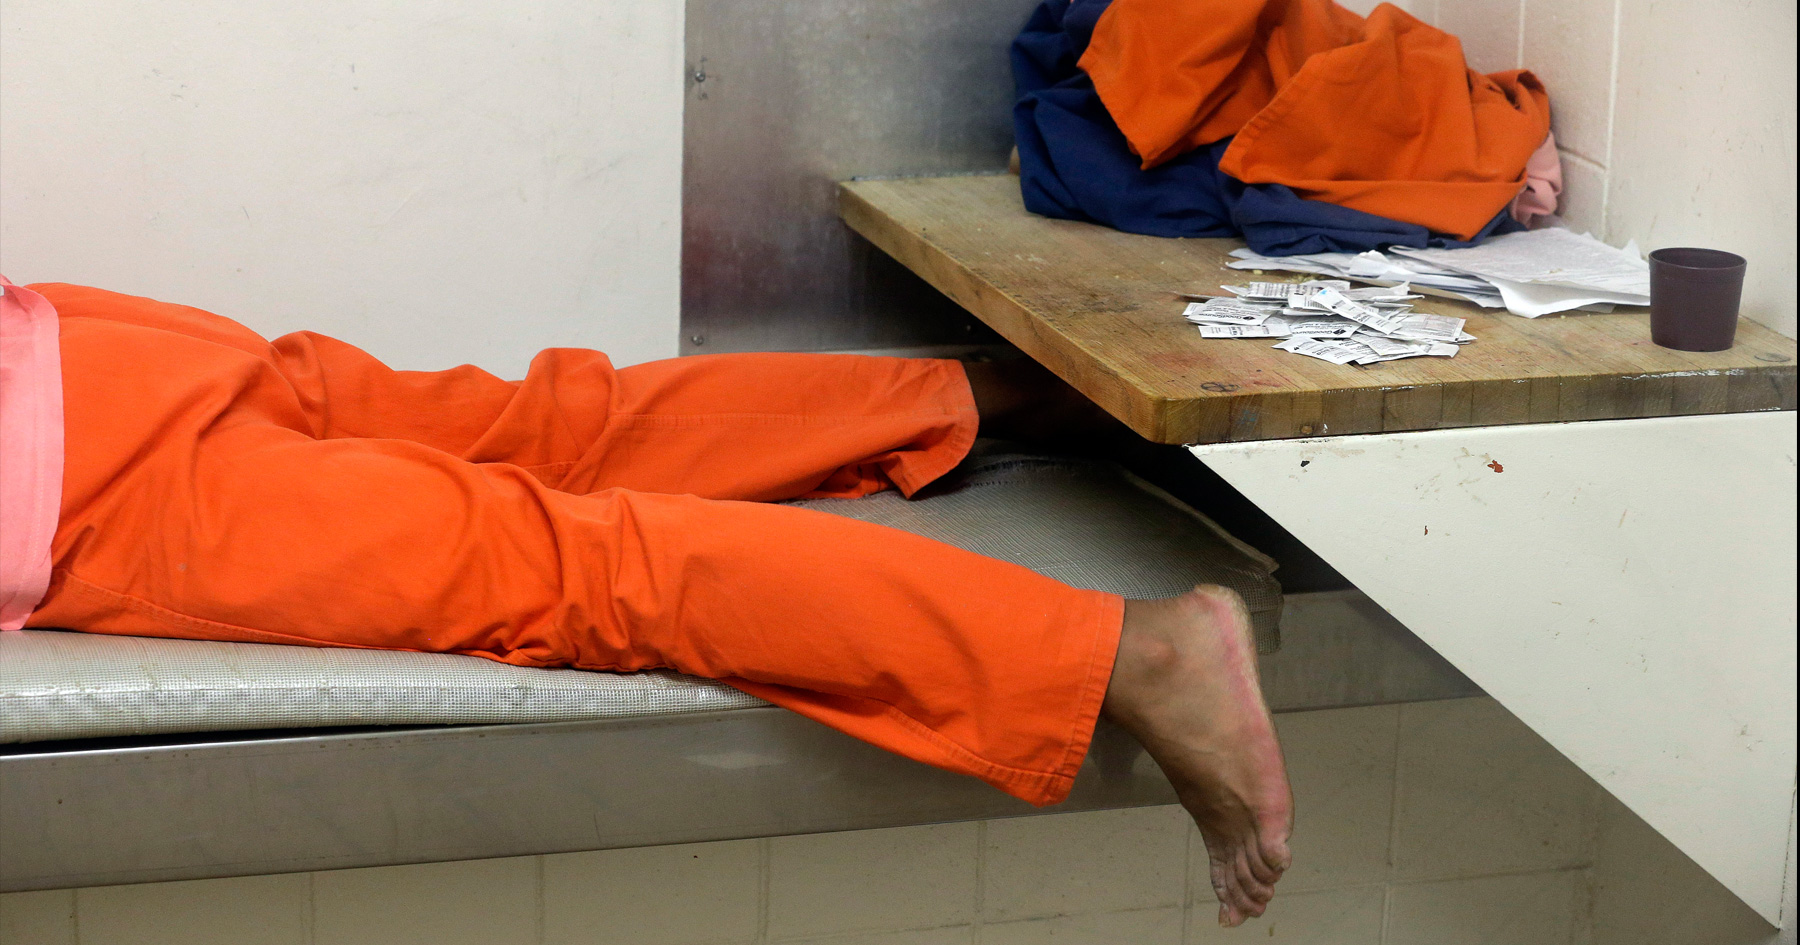 Inmate lying down on their bed in prison cell